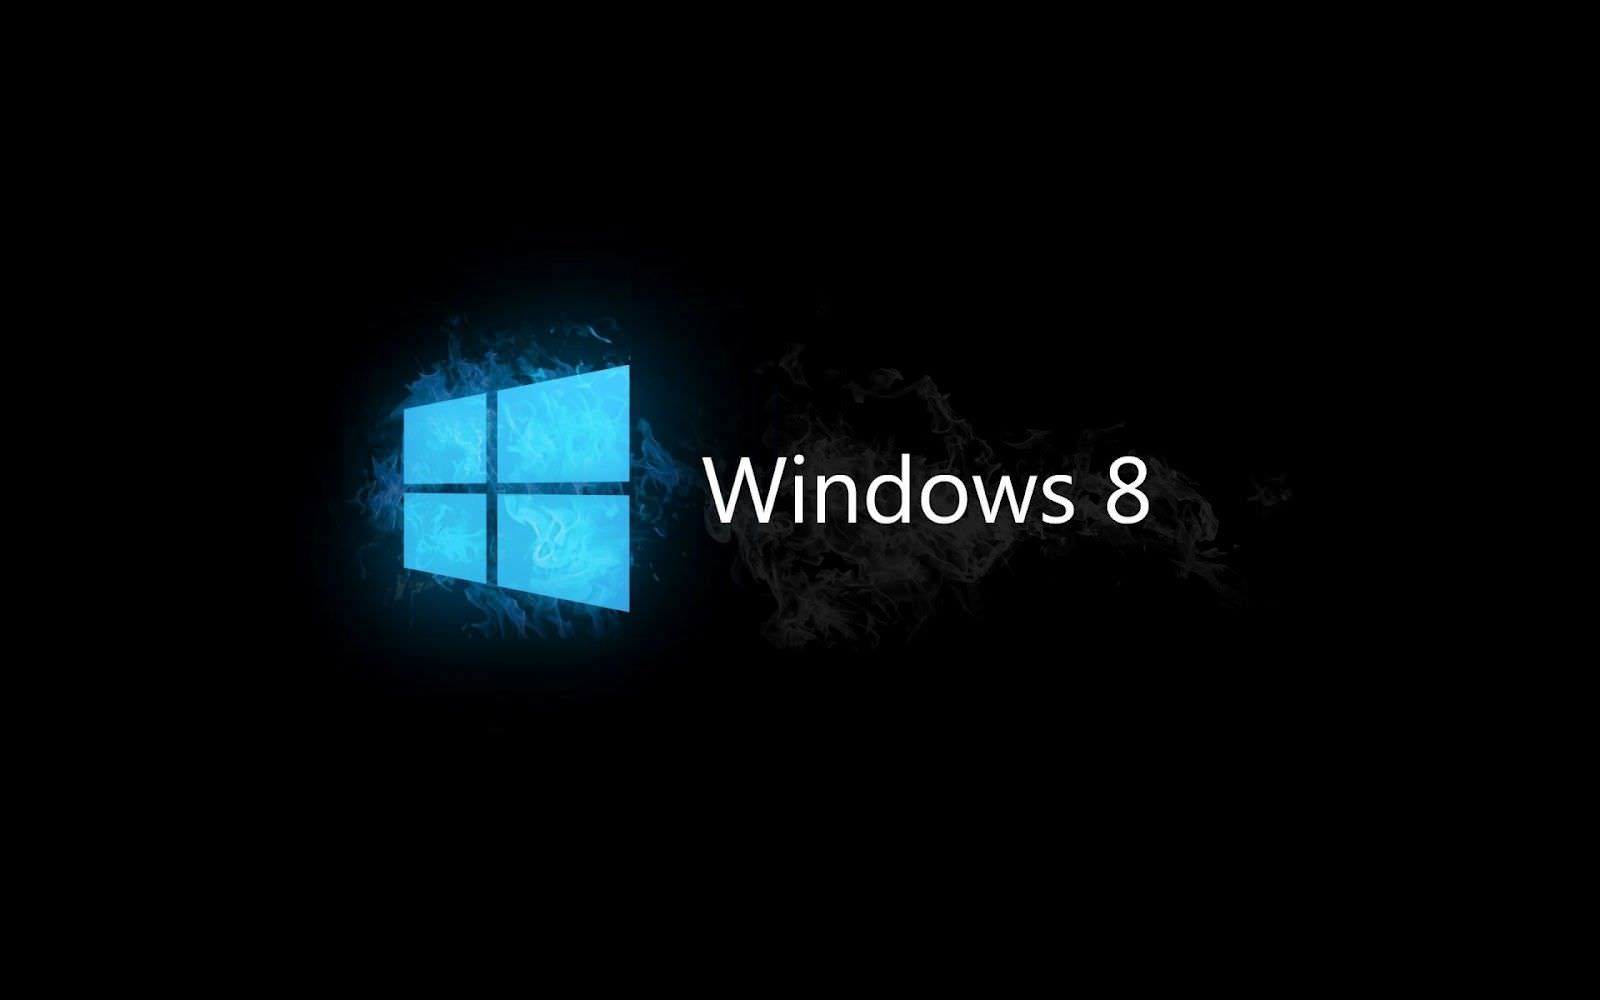 Black Background Windows 8 Wallpaper